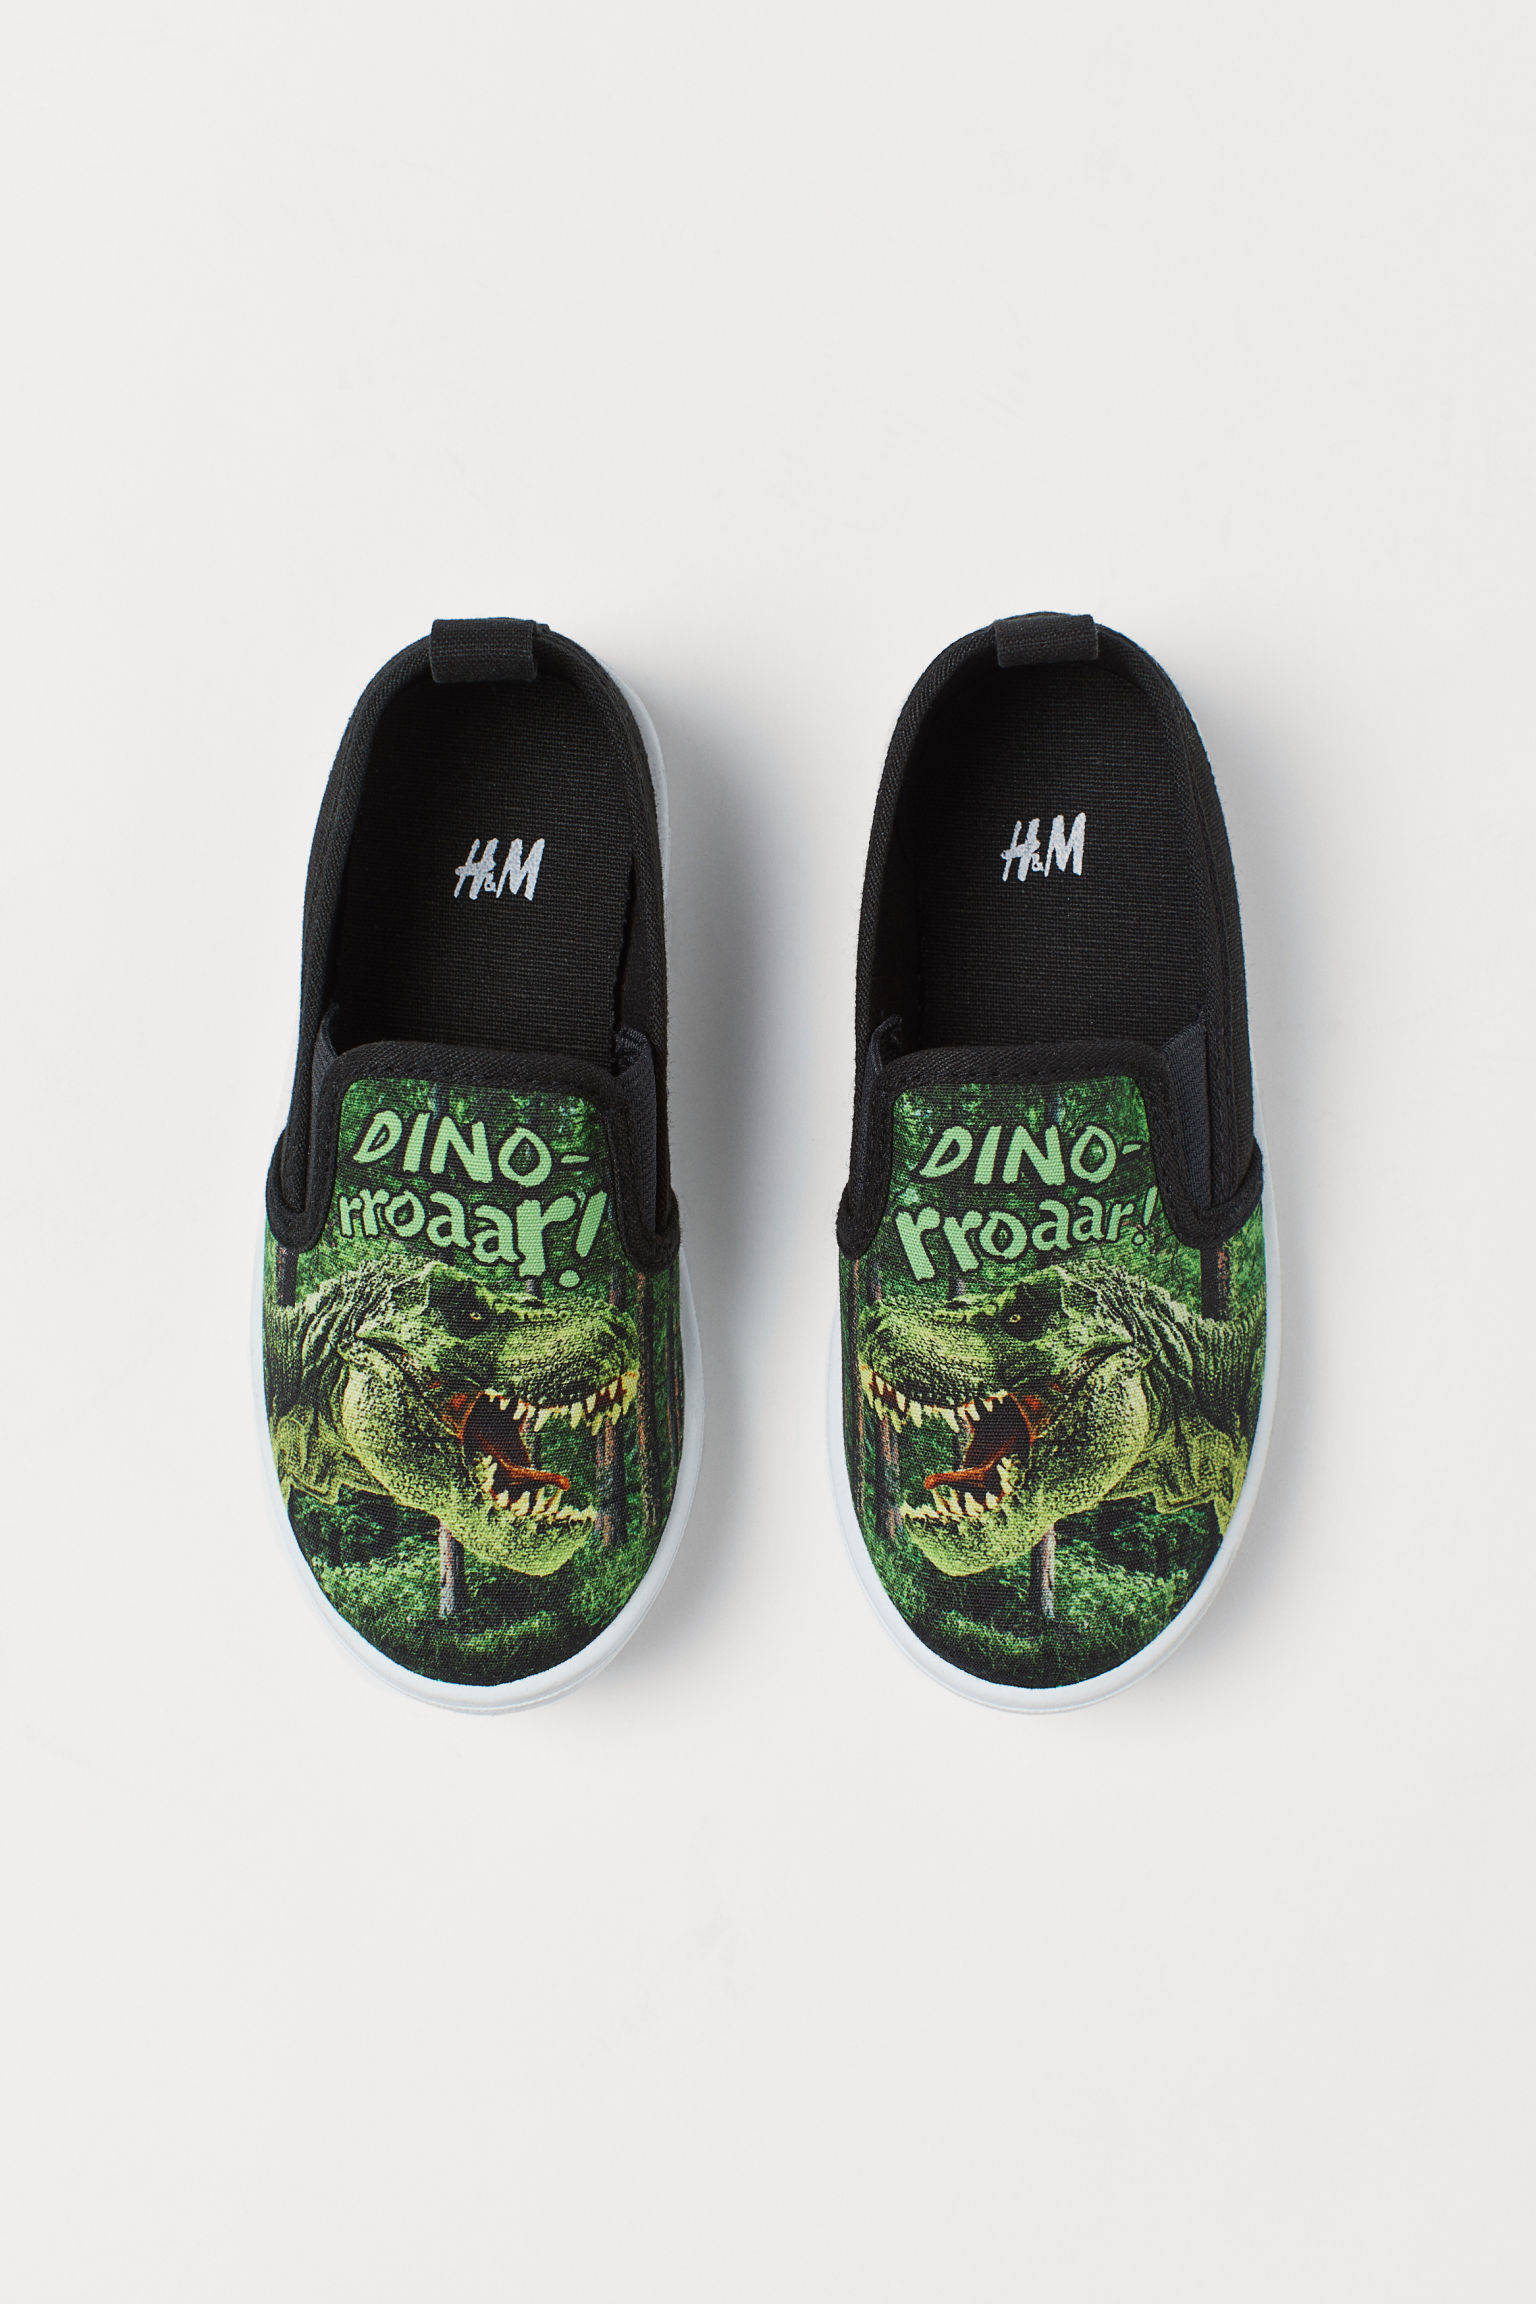 H&M Printed Slip-on Shoes